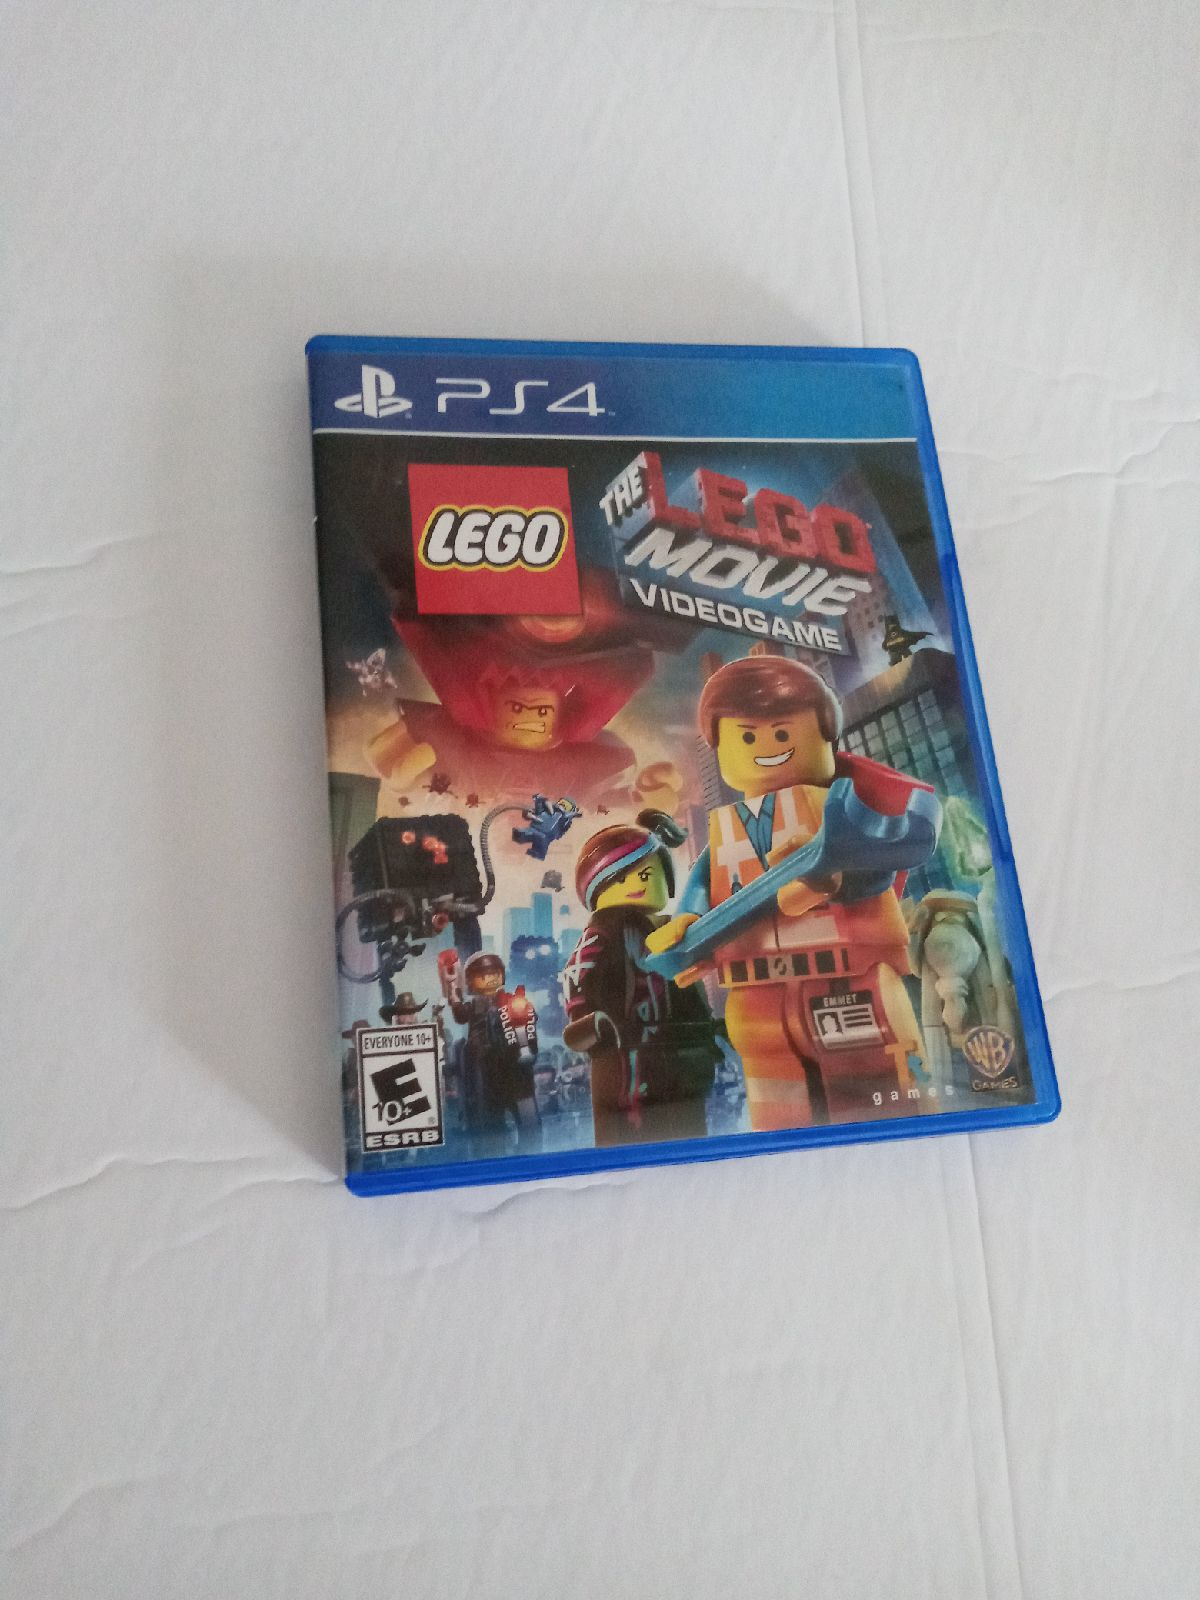 The LEGO Movie 2 Videogame on Playstatio